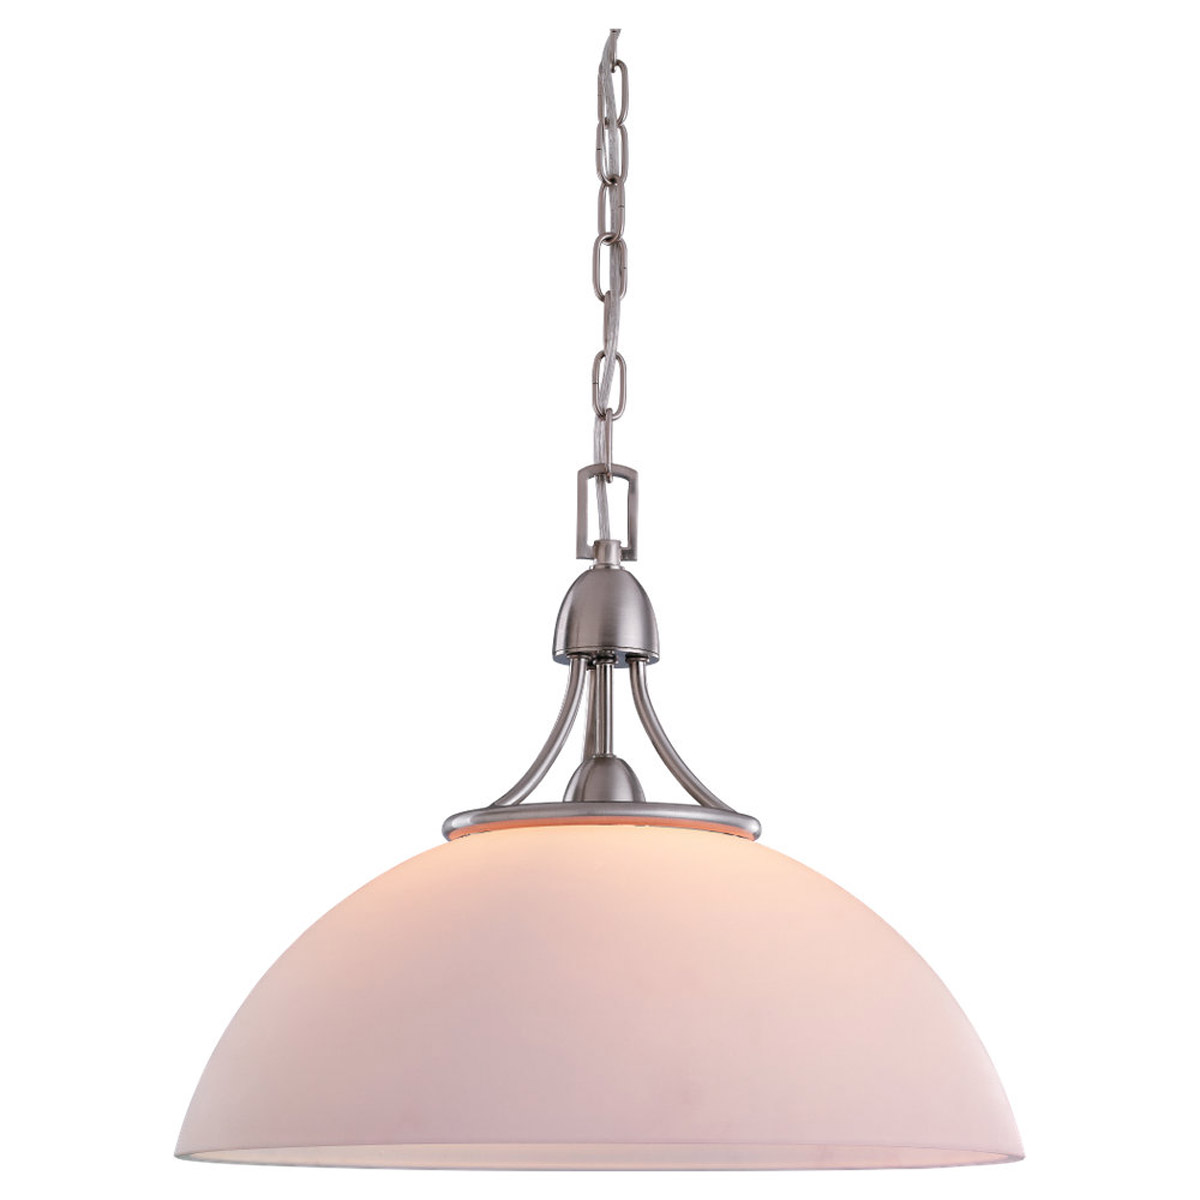 Sea Gull Lighting Stockholm 1 Light Pendant in Brushed Nickel 65385-962